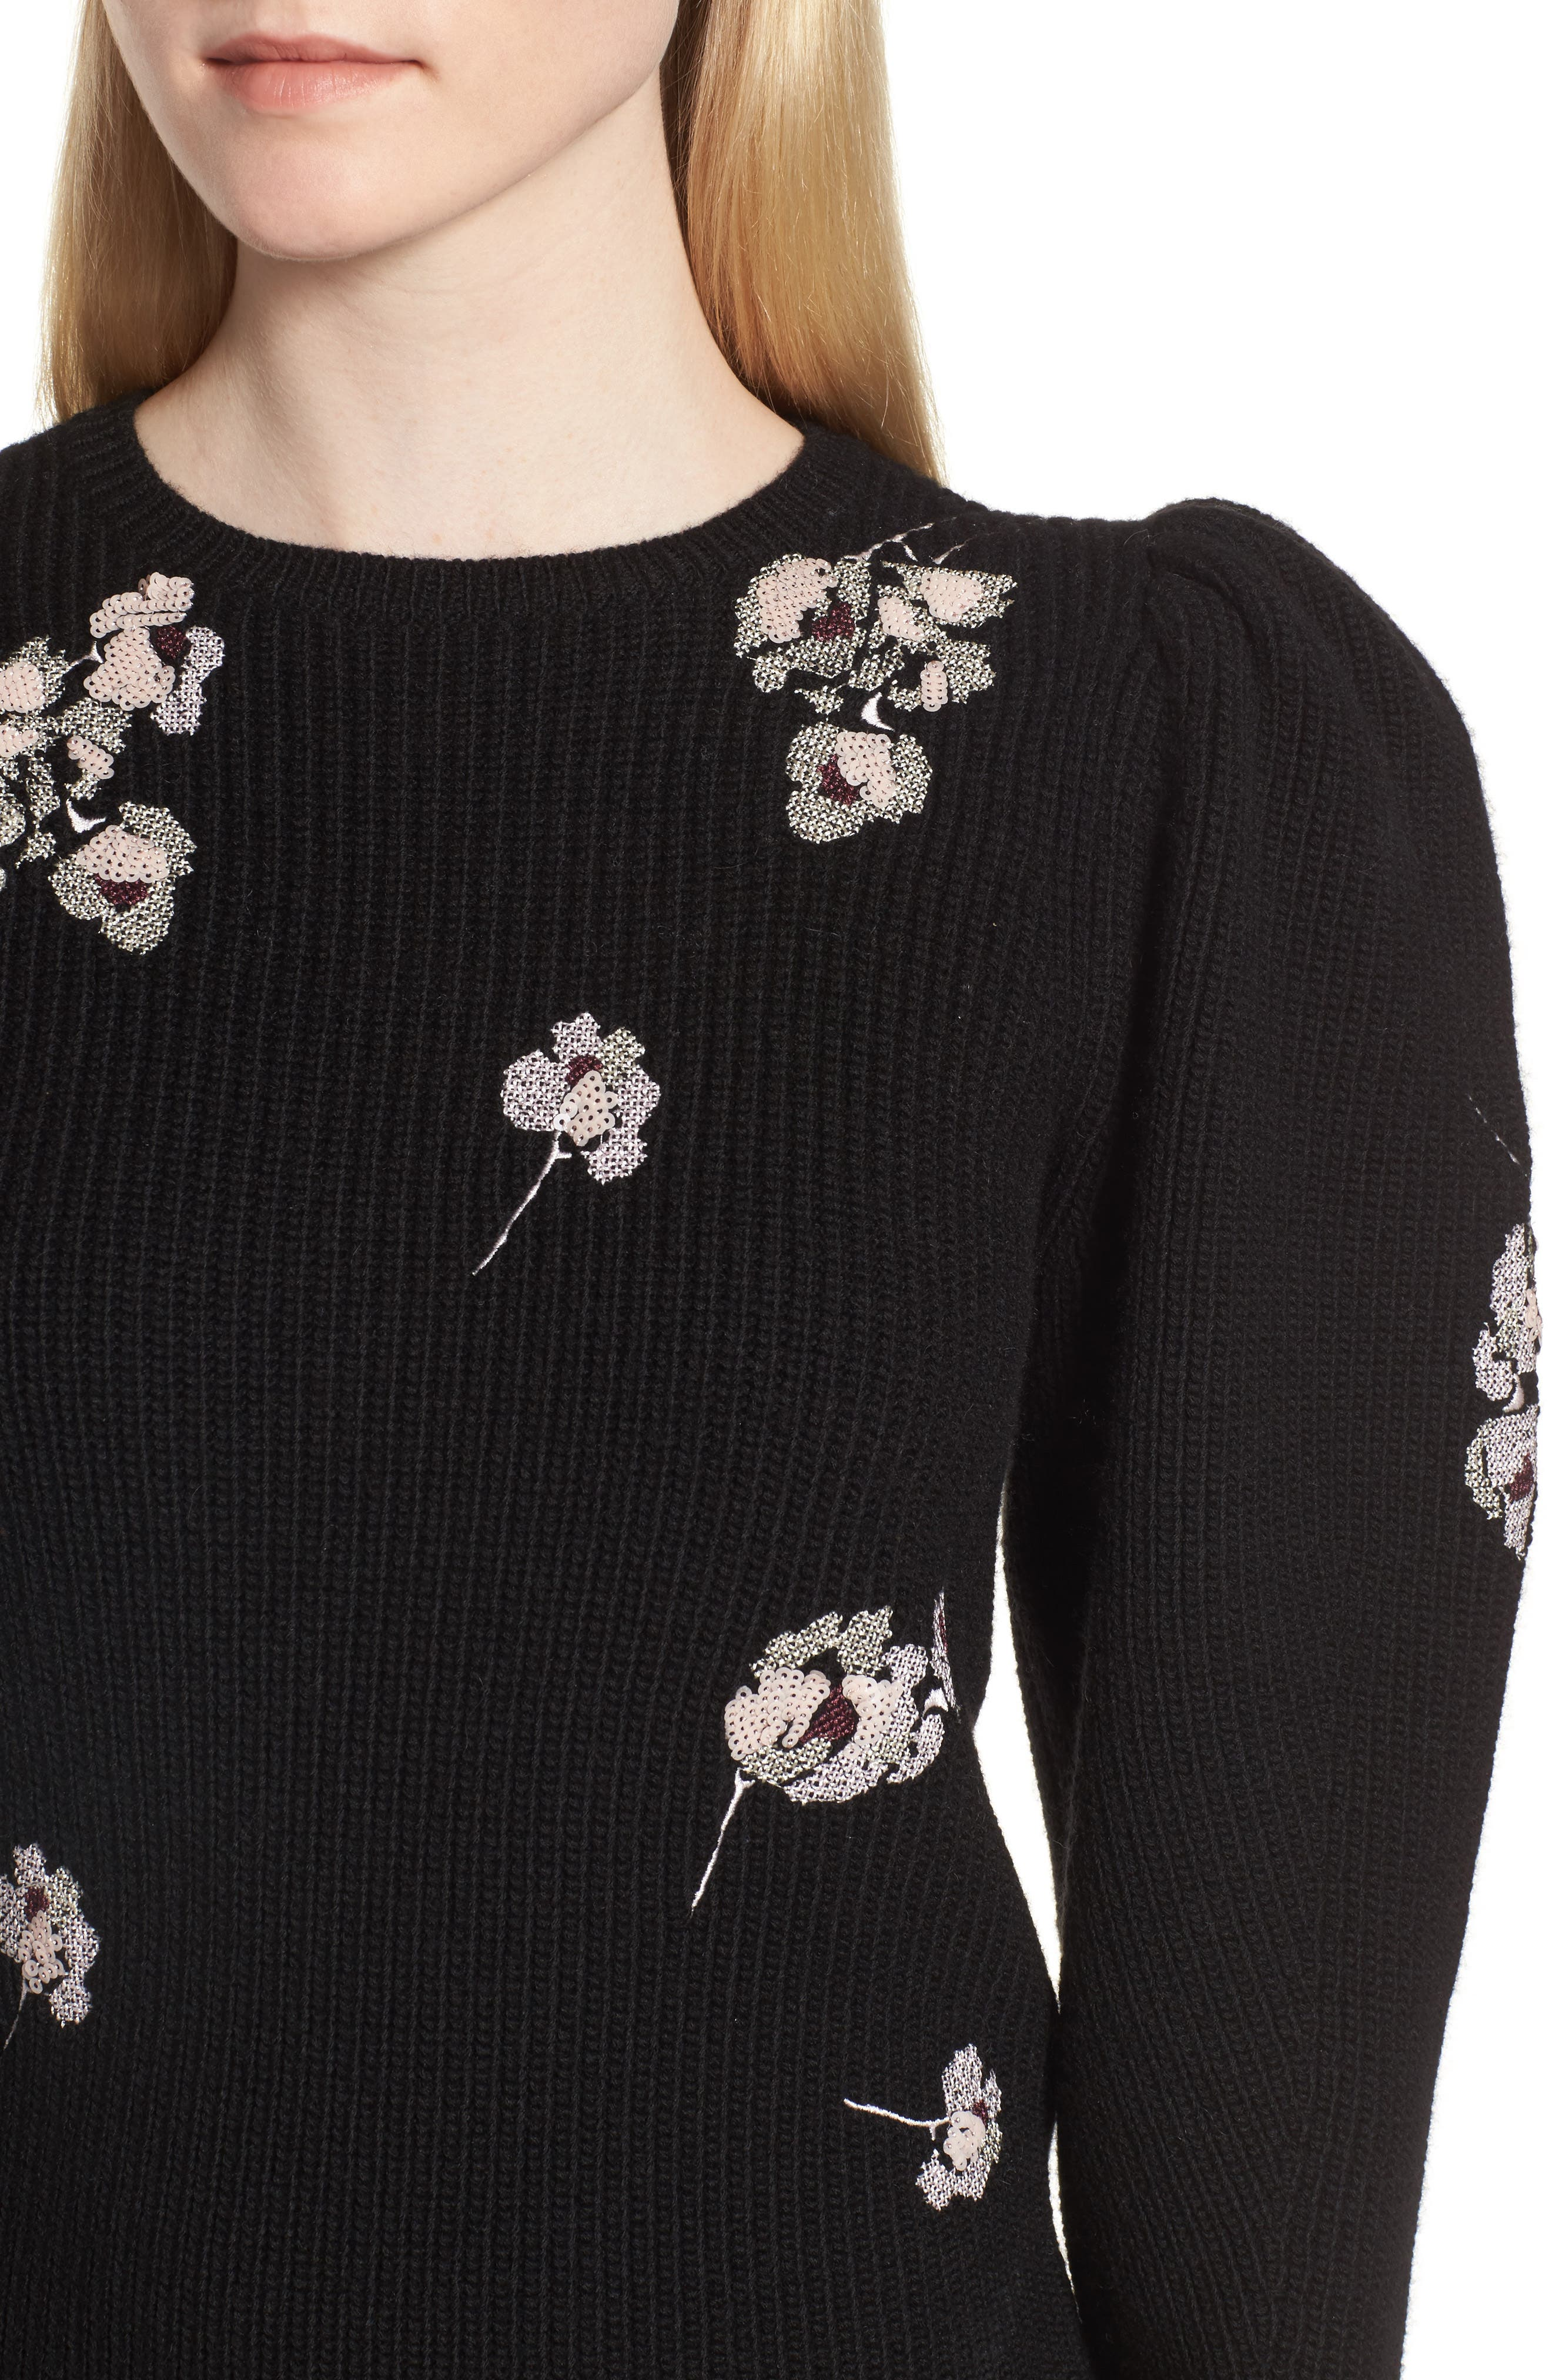 Embroidered Poet Sleeve Merino Wool Sweater,                             Alternate thumbnail 4, color,                             Black Embroidery